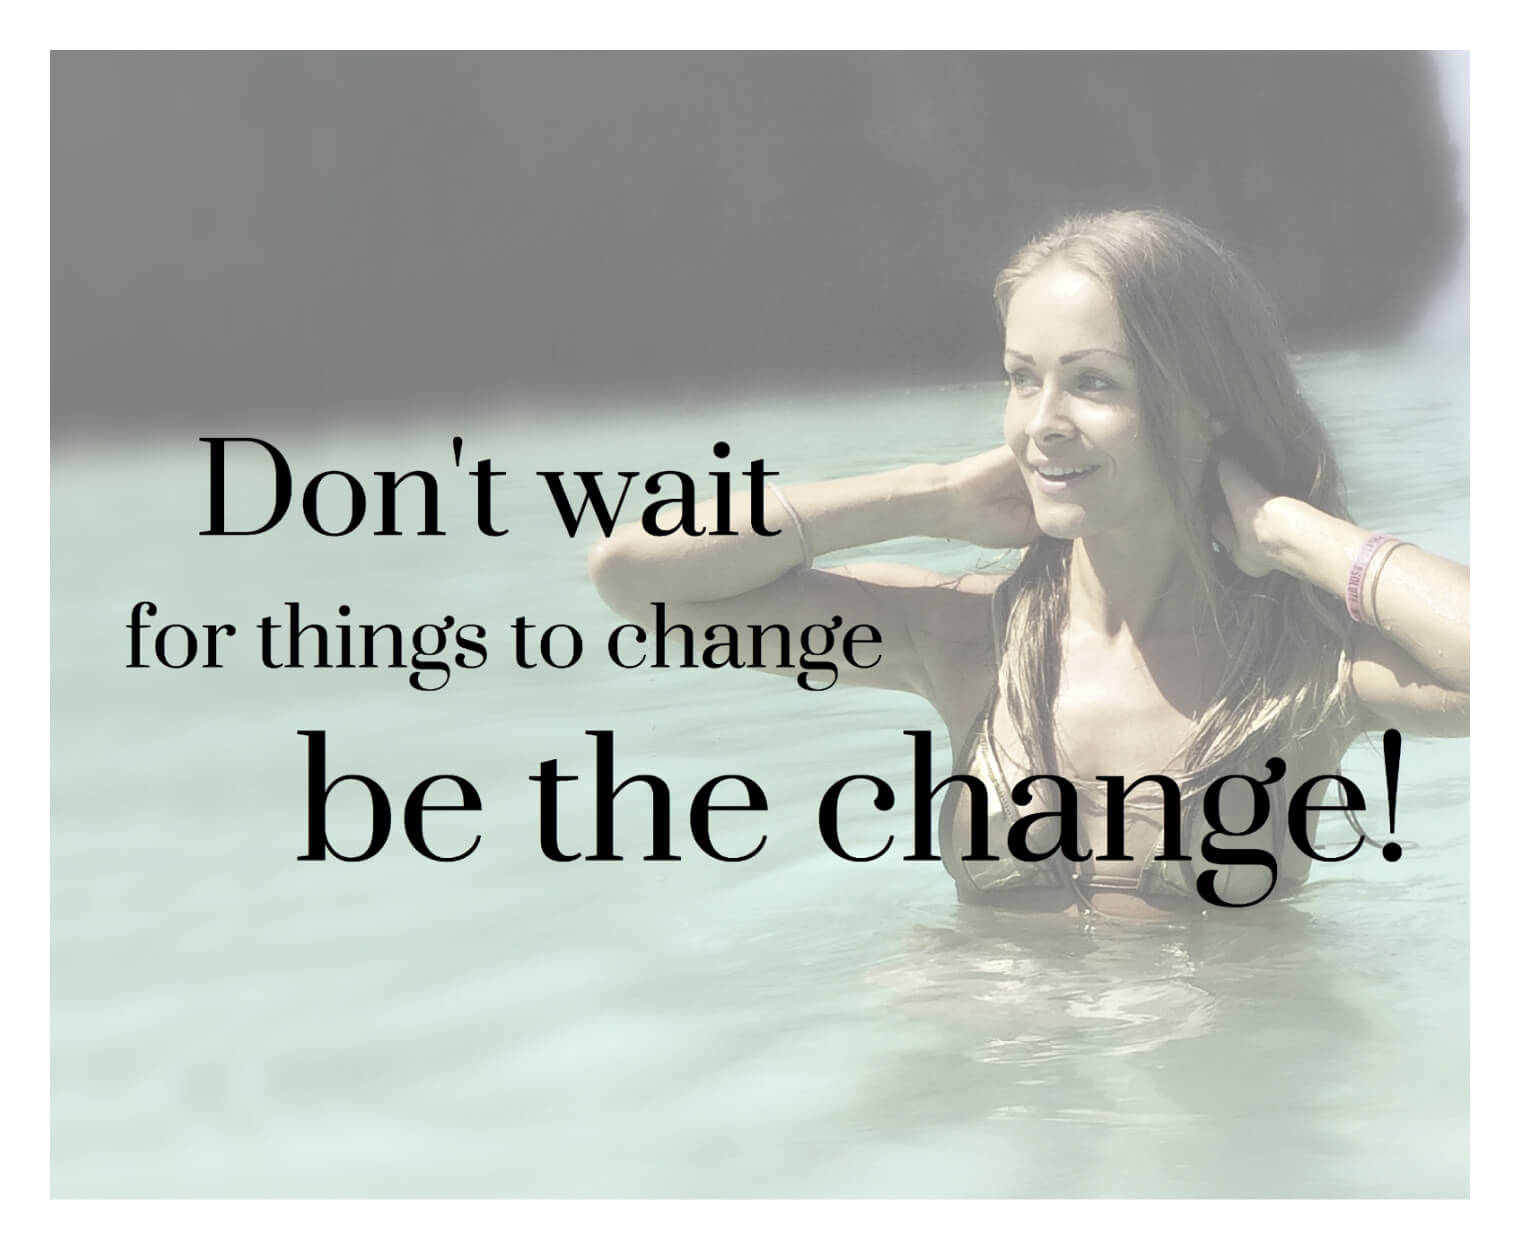 Don't wait for things to change - be the change!  KarolinaKærsner.com